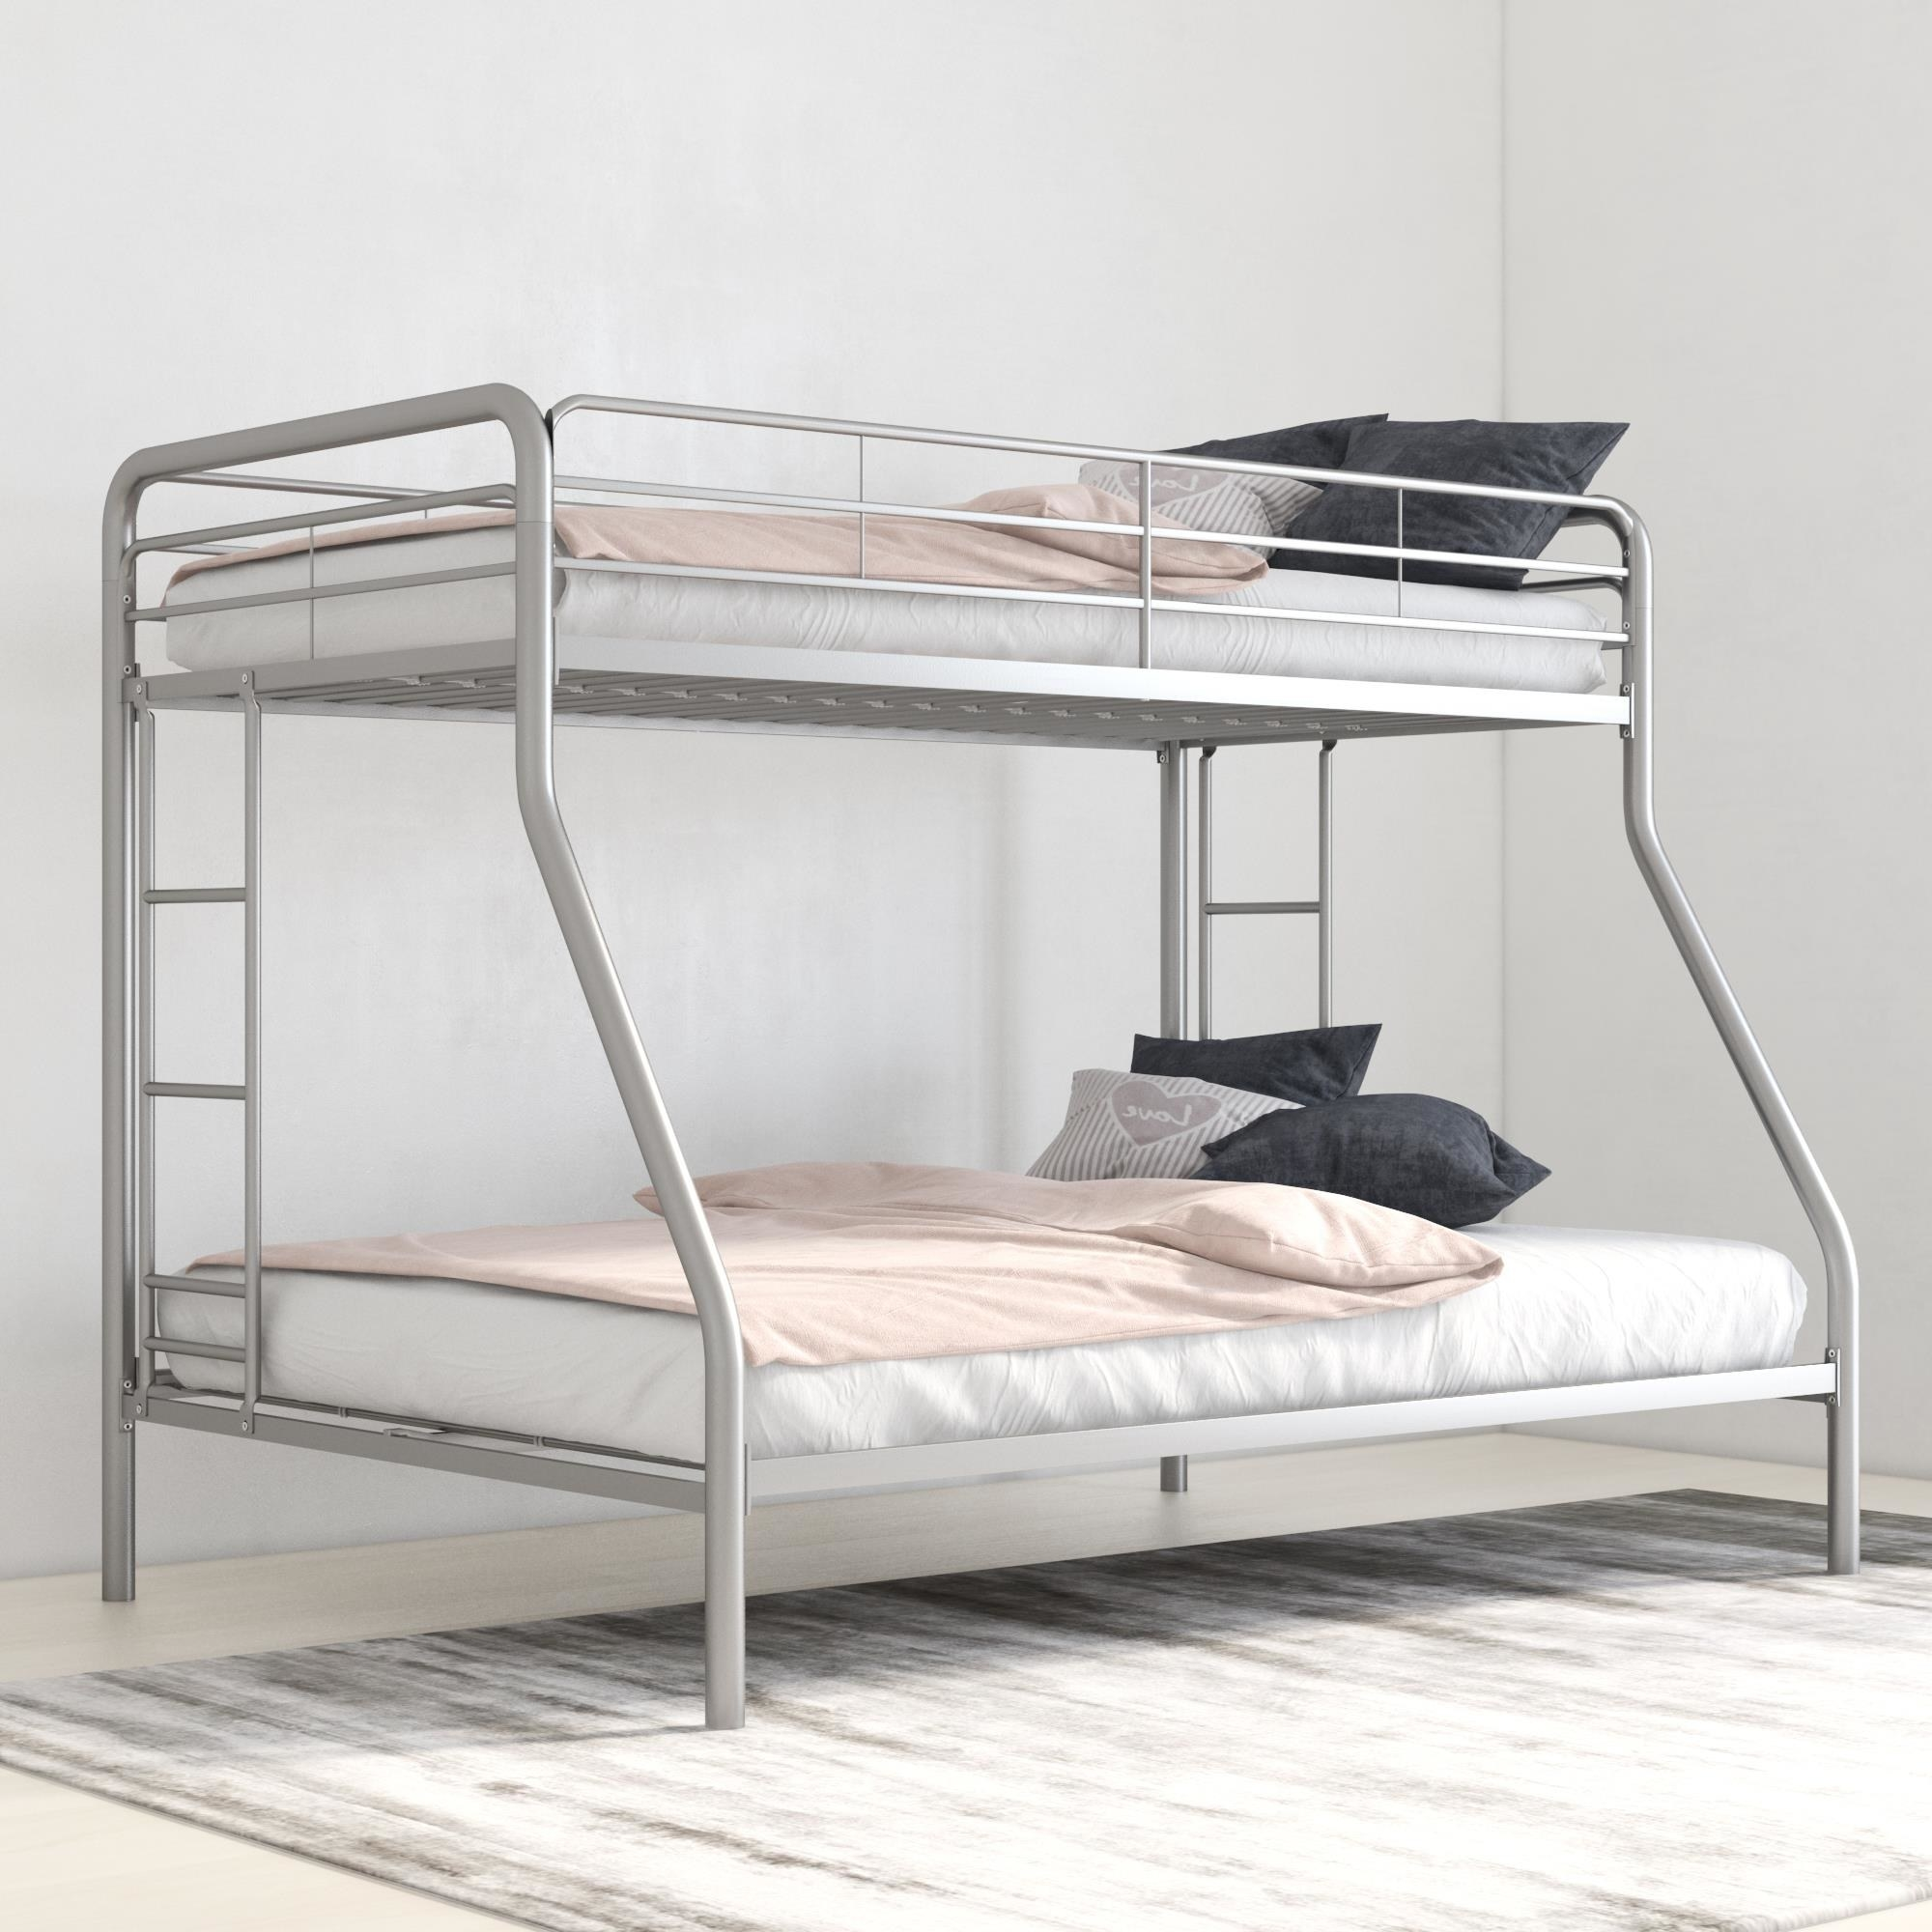 The silver bunk bed frame